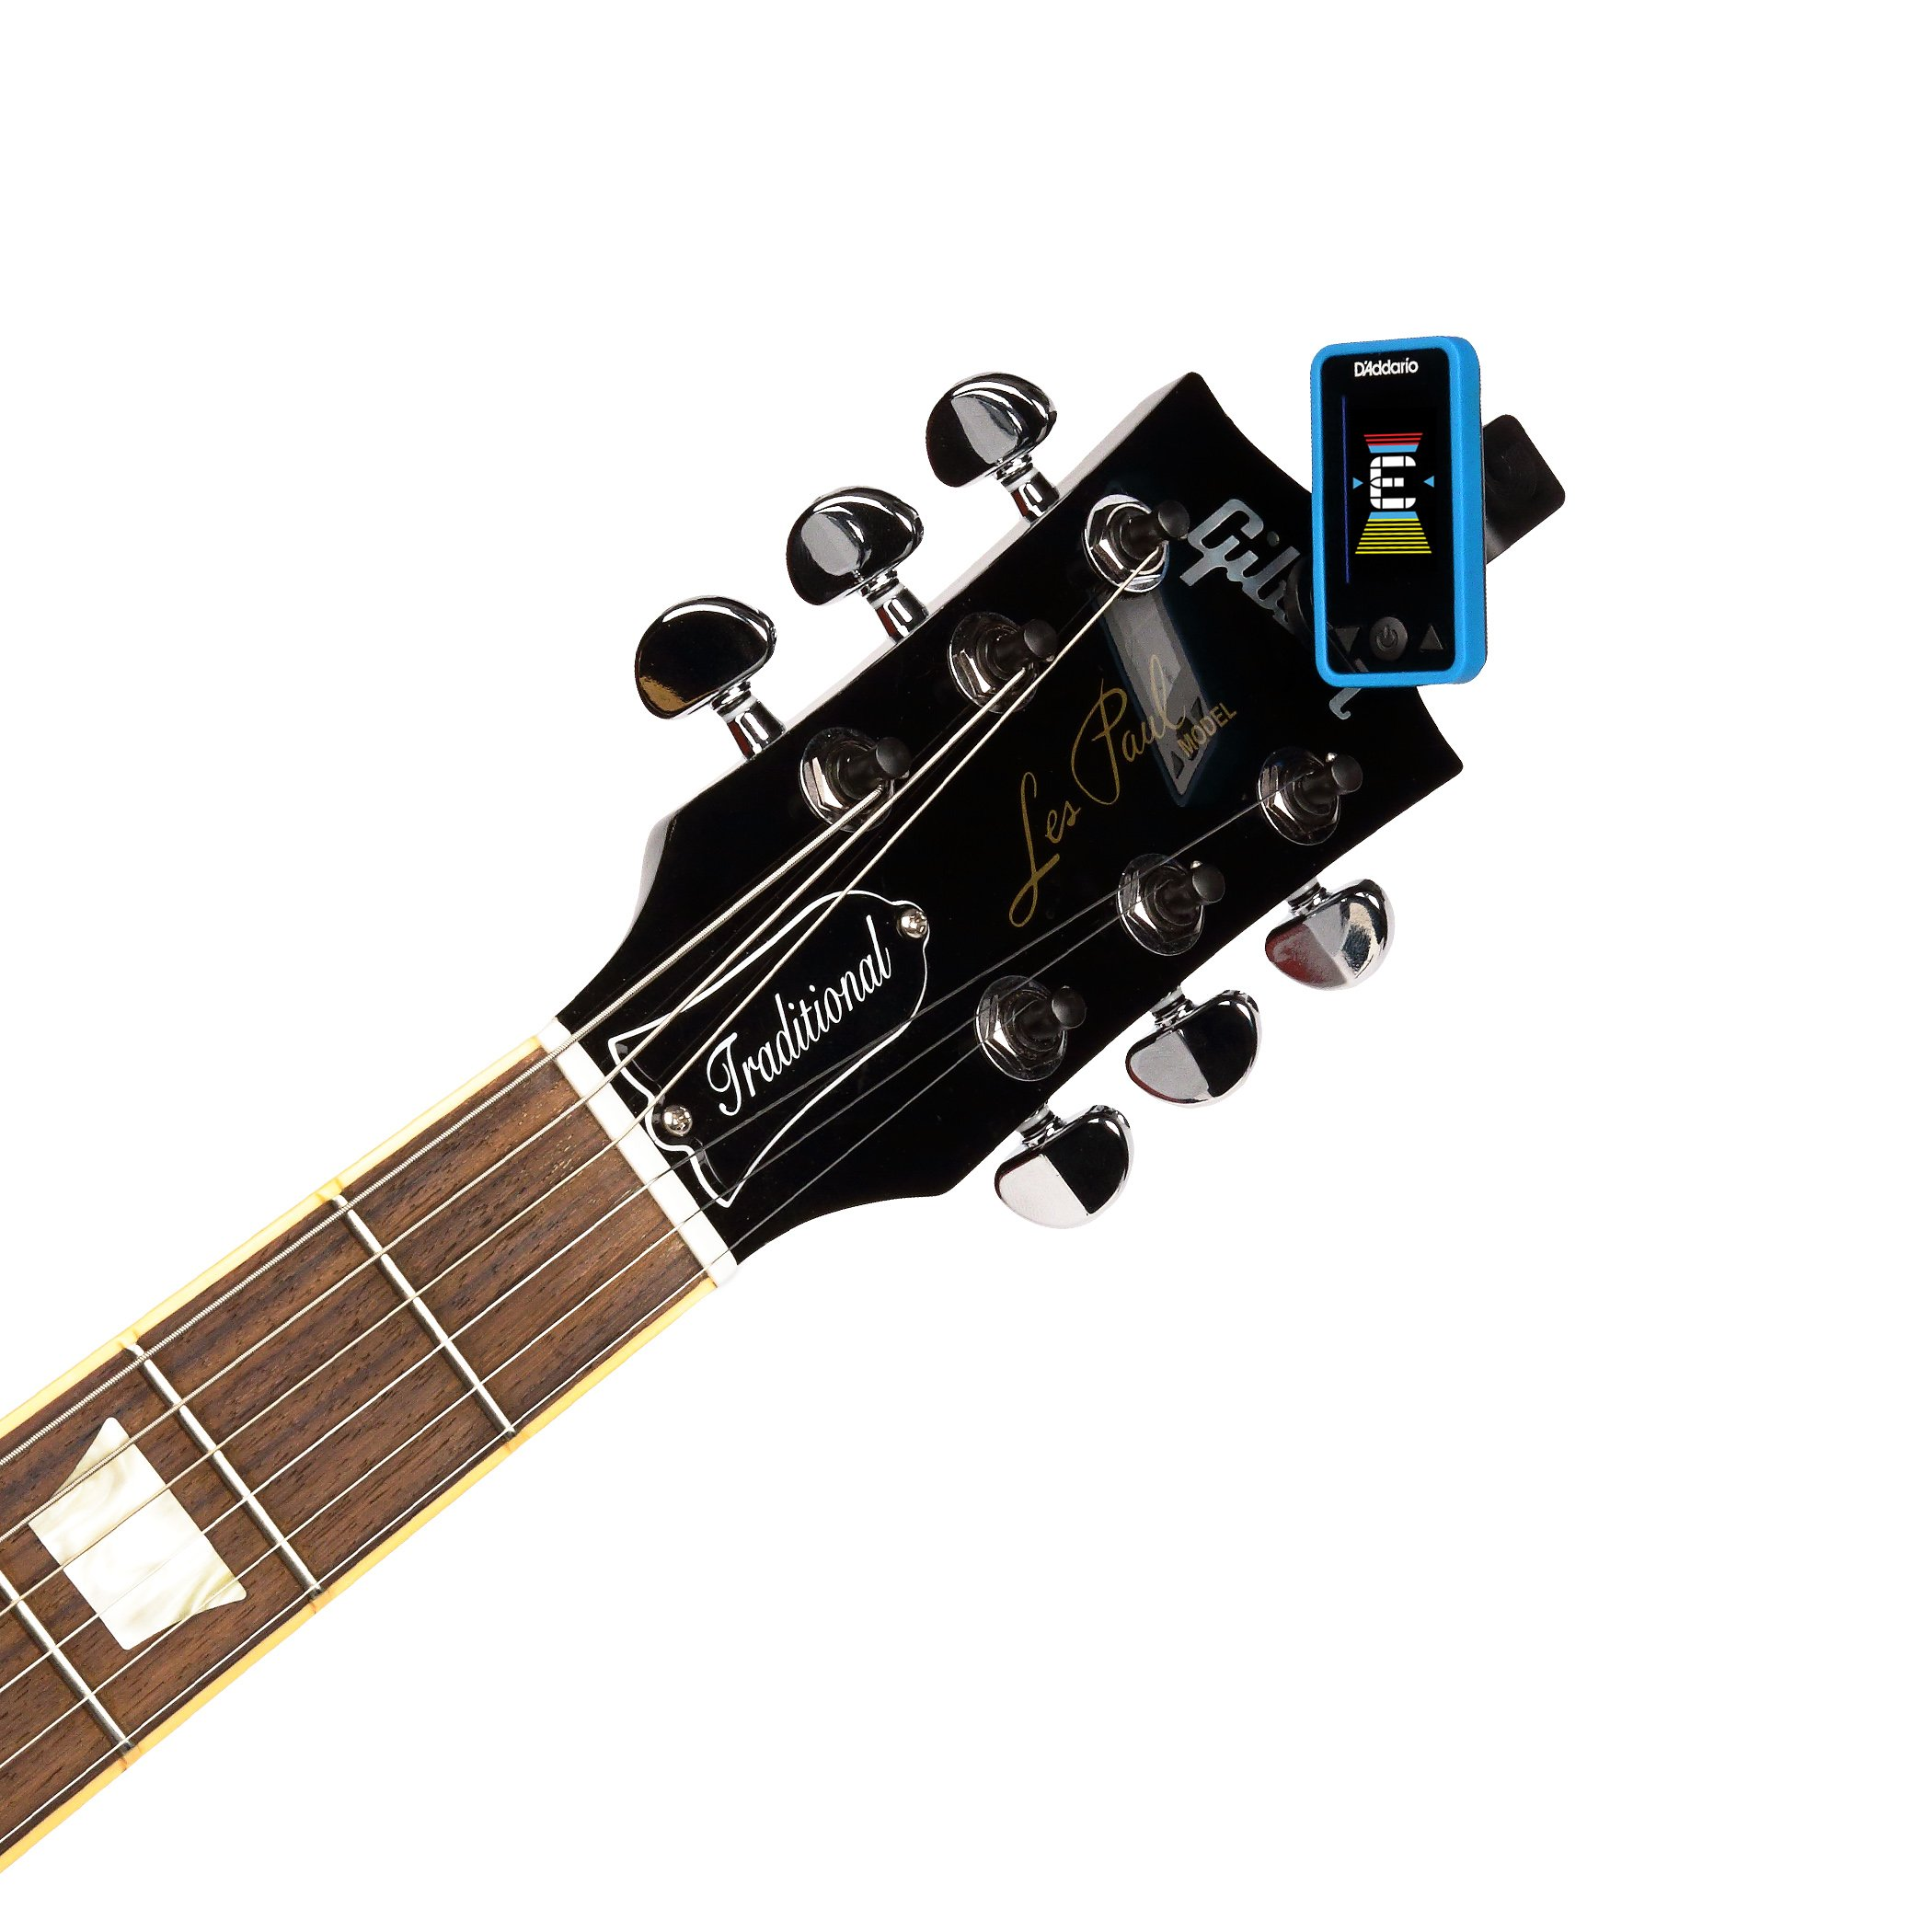 D'Addario Accessories Eclipse Headstock Tuner, Blue by Planet Waves (Image #3)